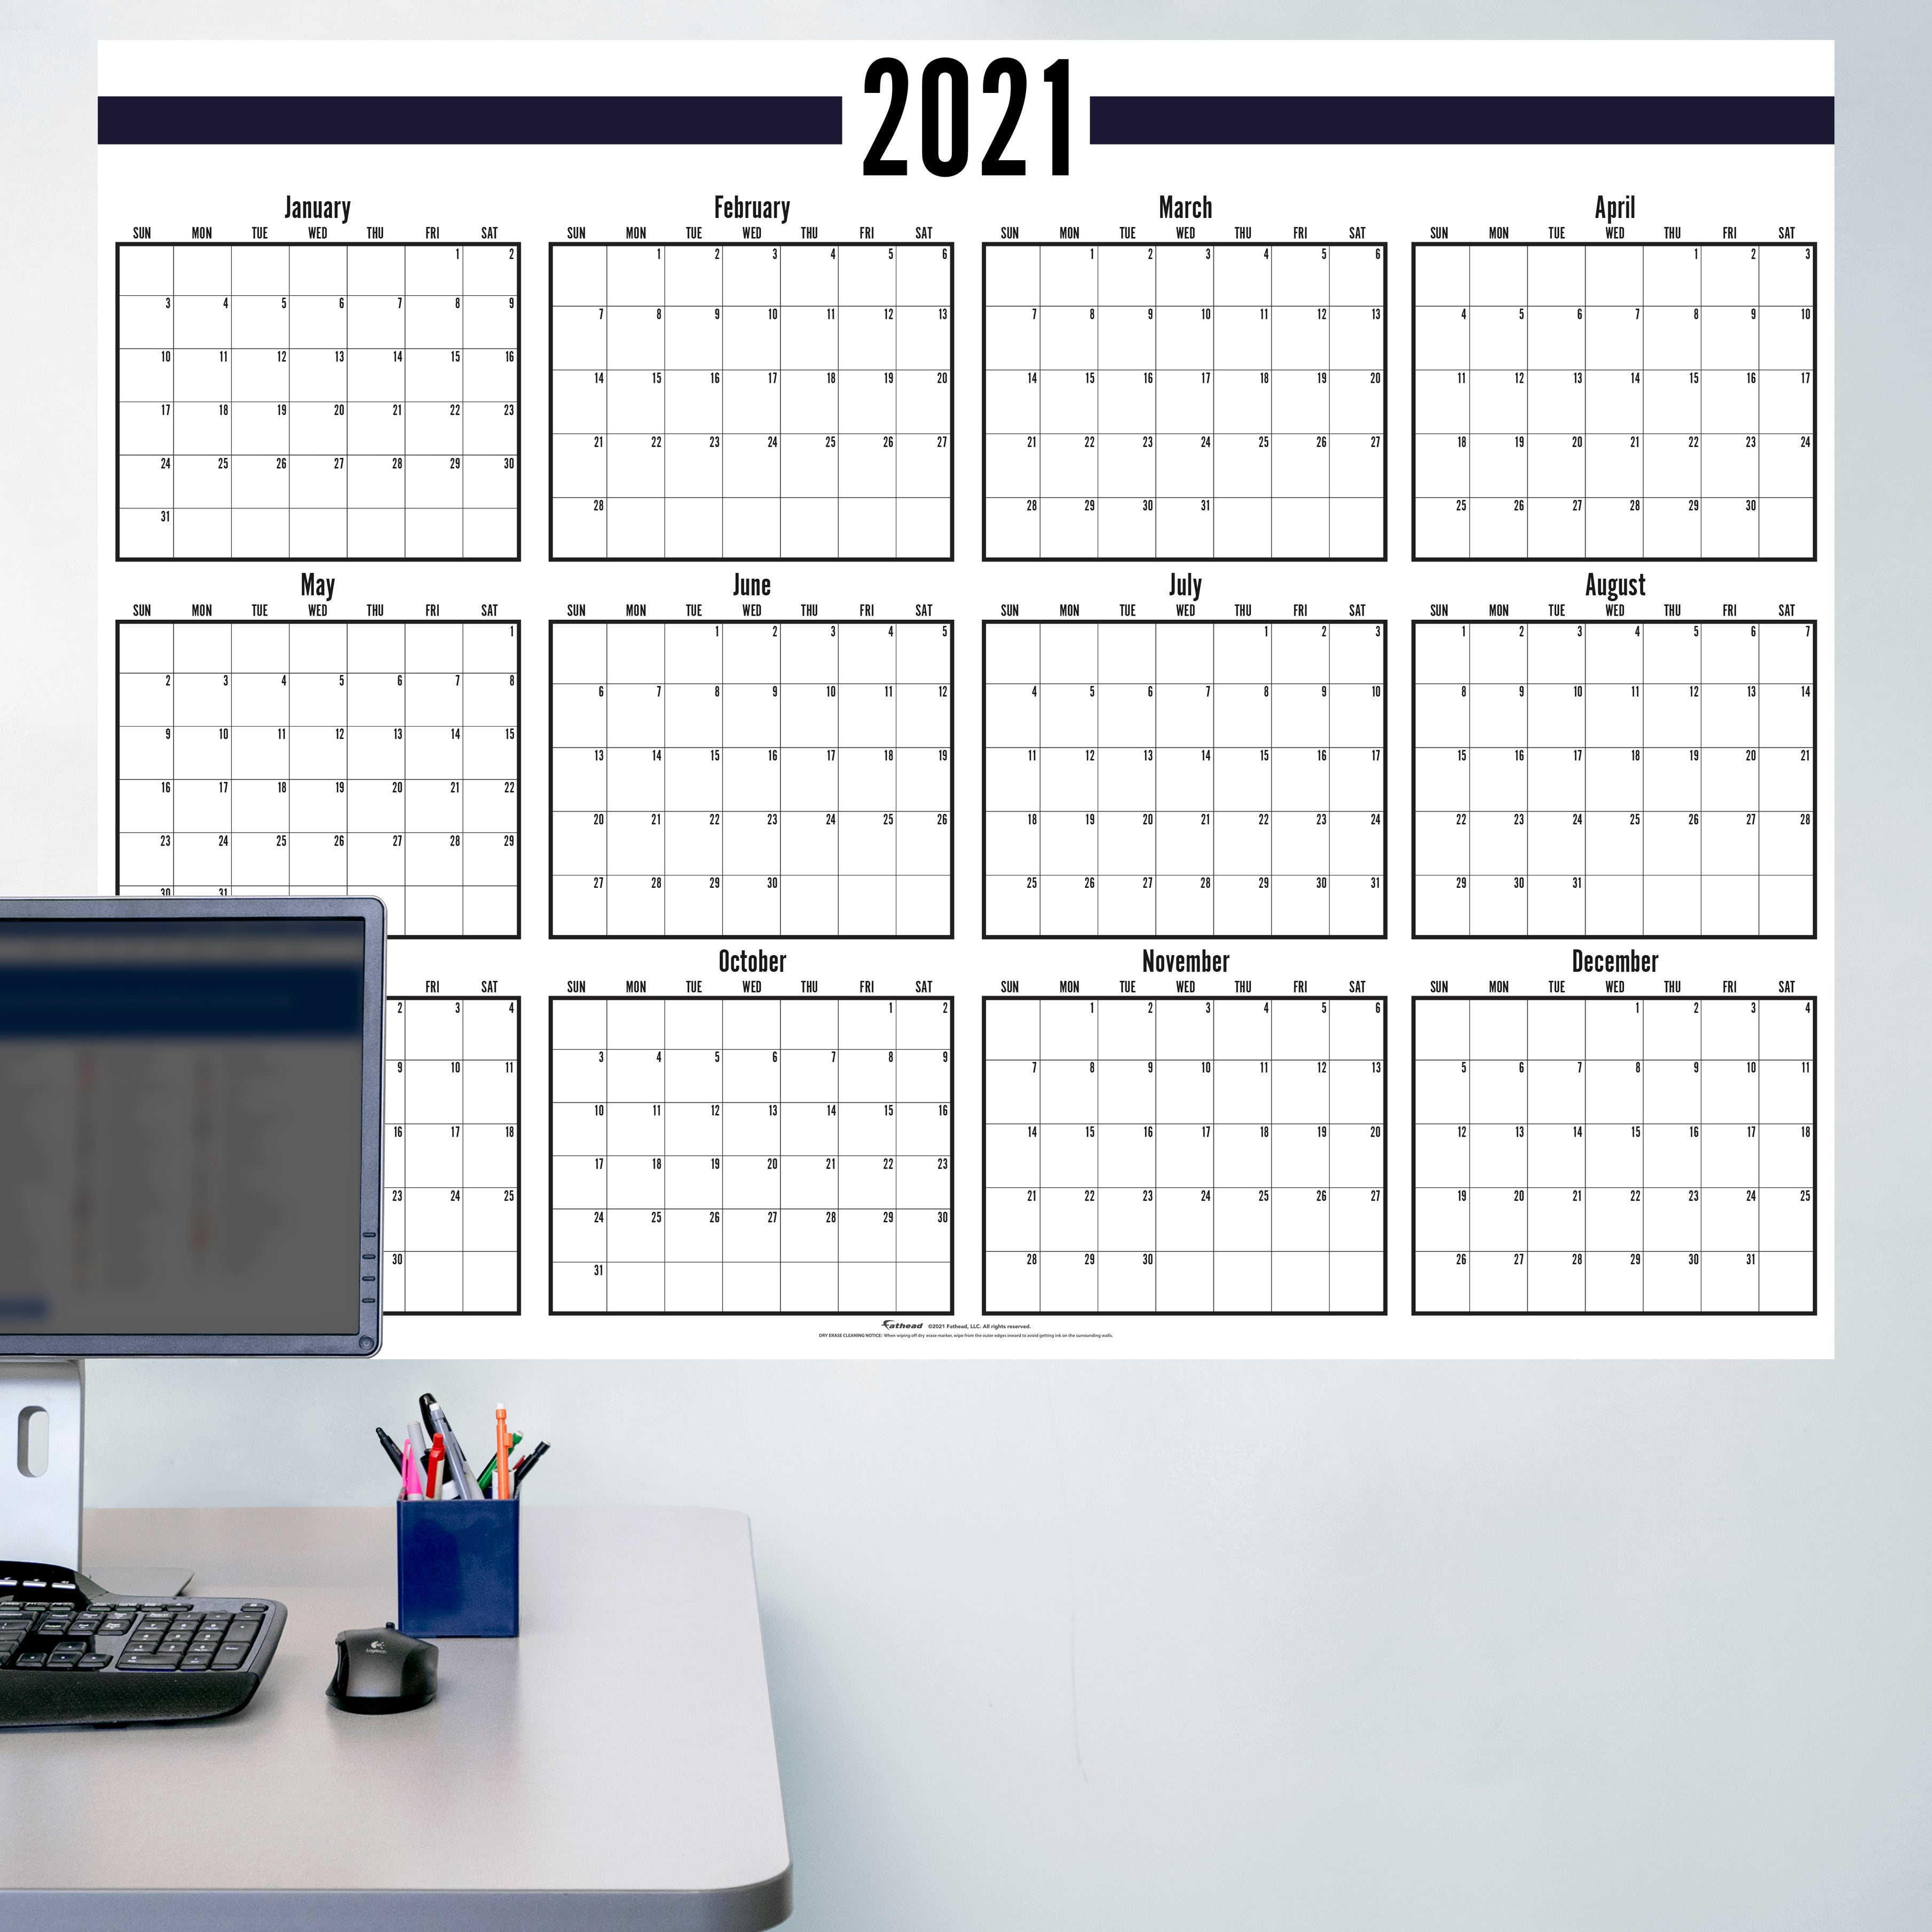 """2021 BLACK and WHITE Dry Erase Calendar - Removable Wall Decal Giant Decal ( 54"""" W x 40"""" H) by Fathead   Vinyl"""